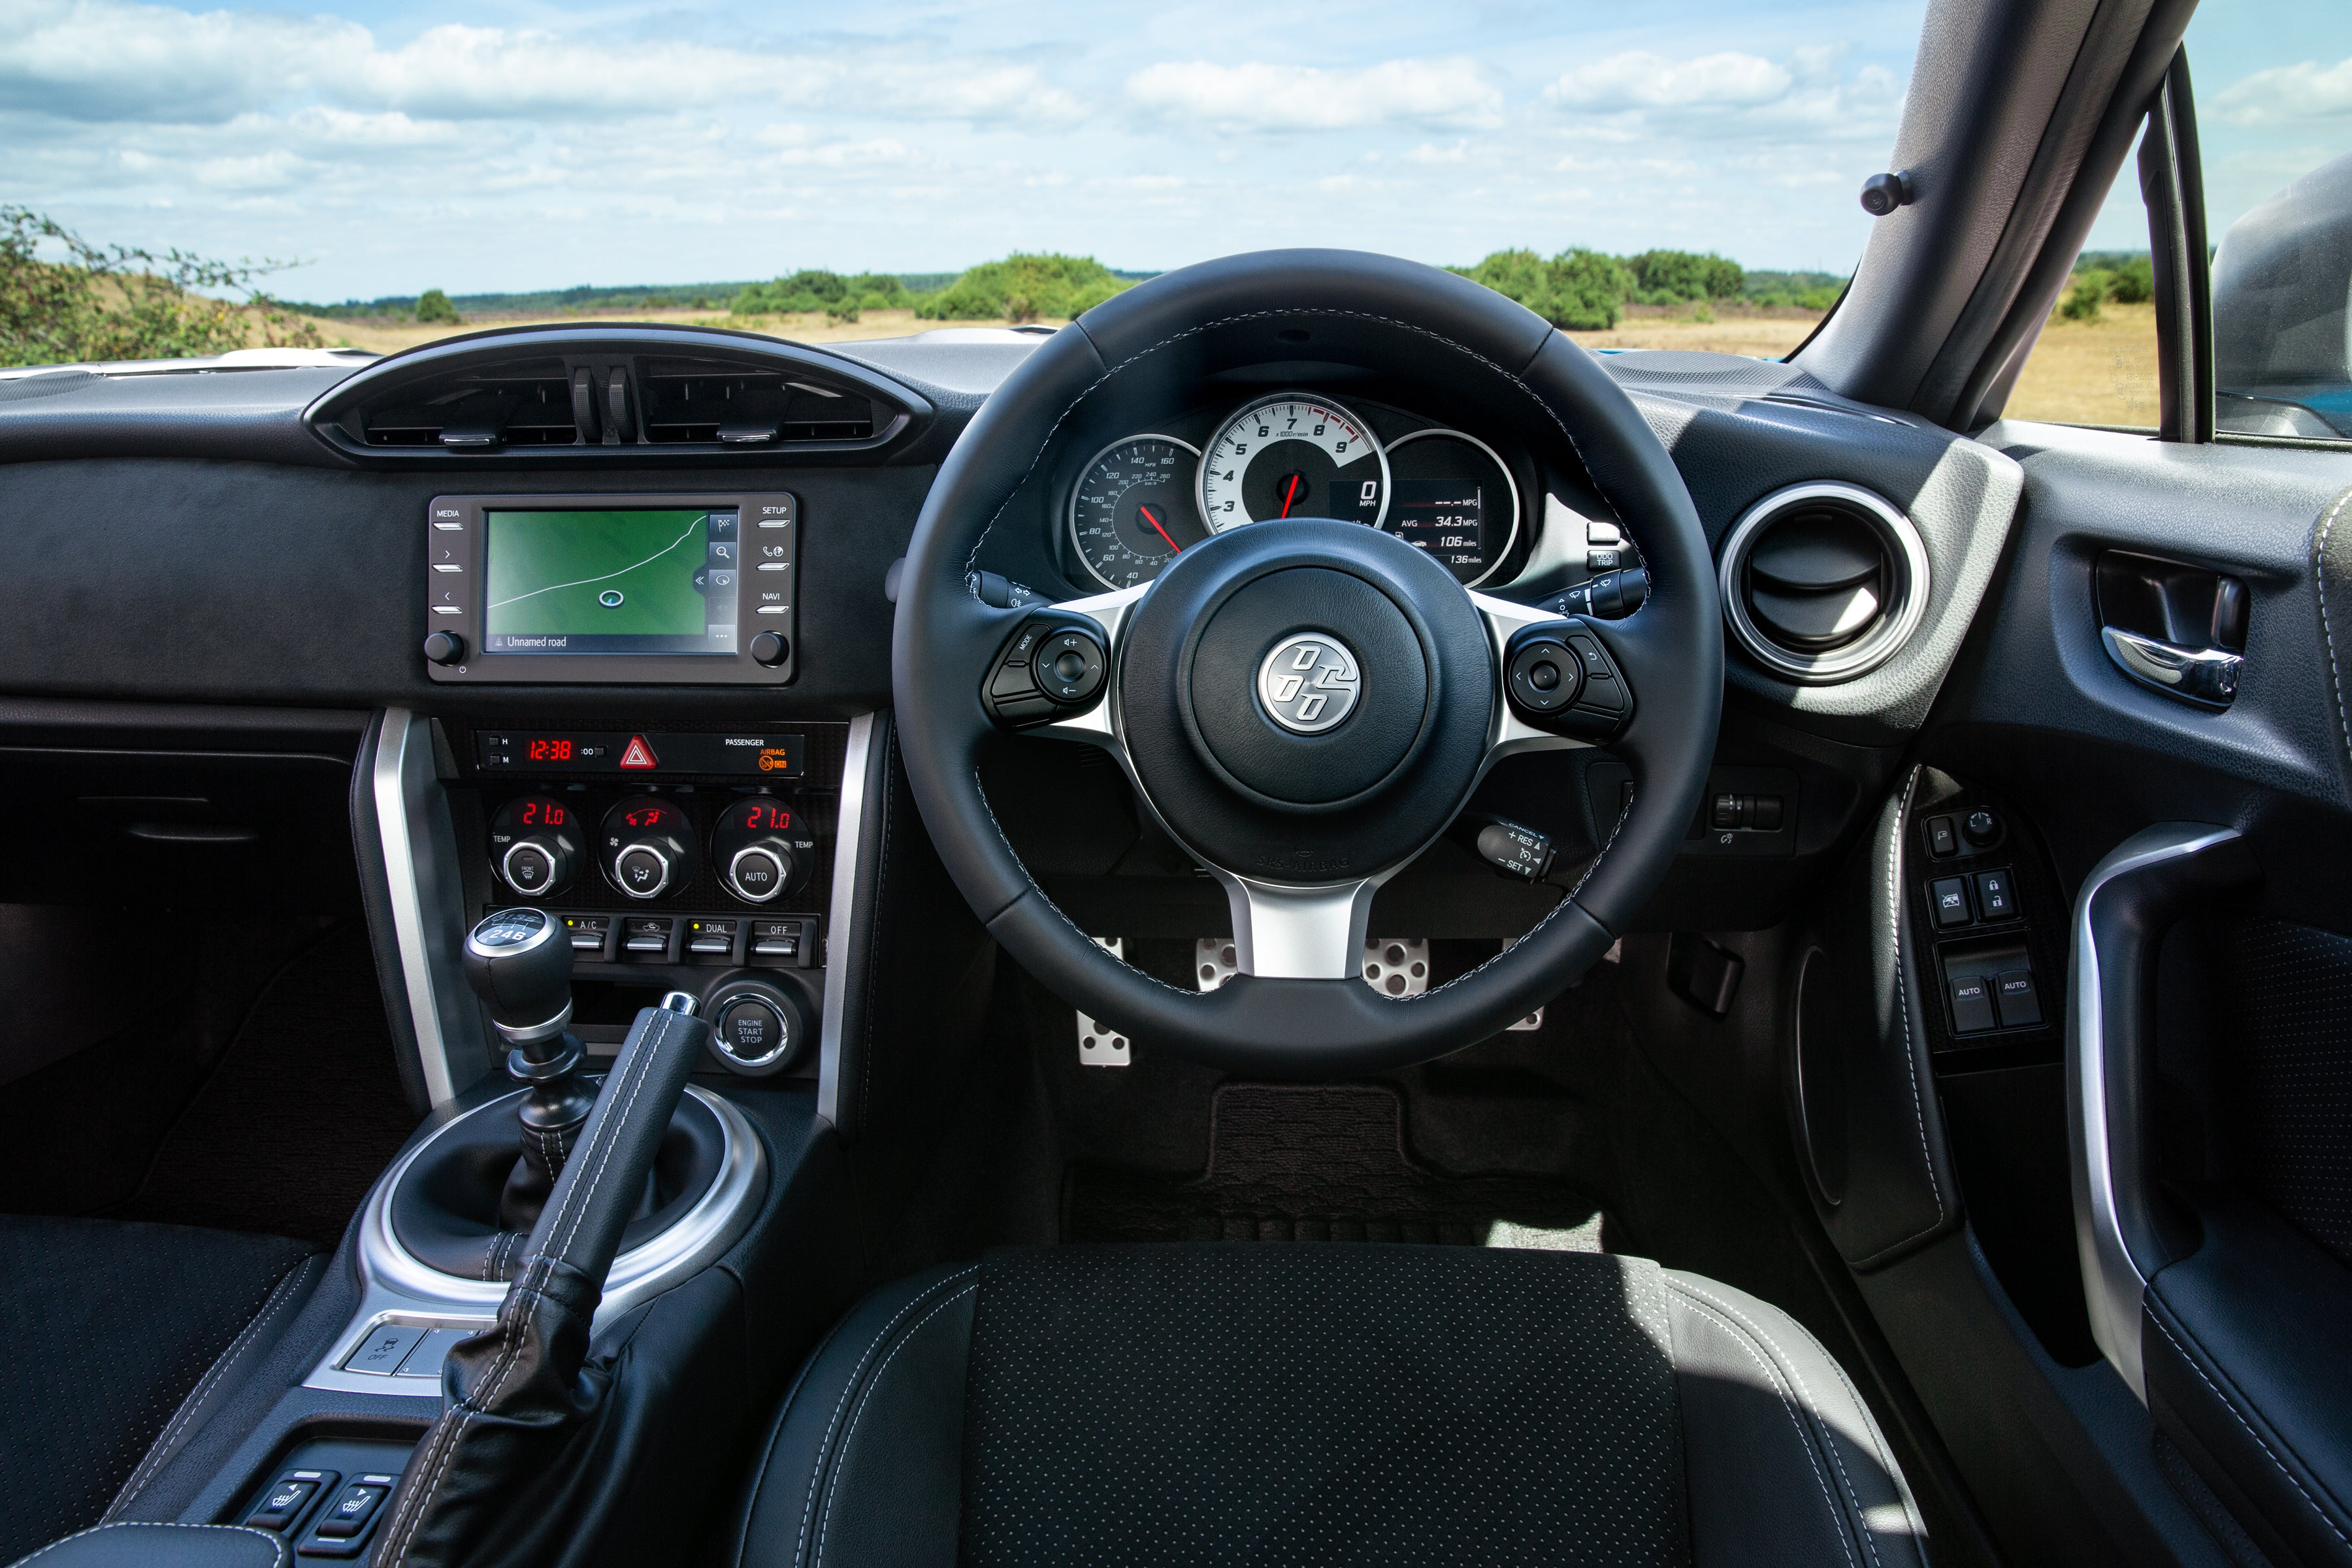 Toyota GT86 Driver's Seat